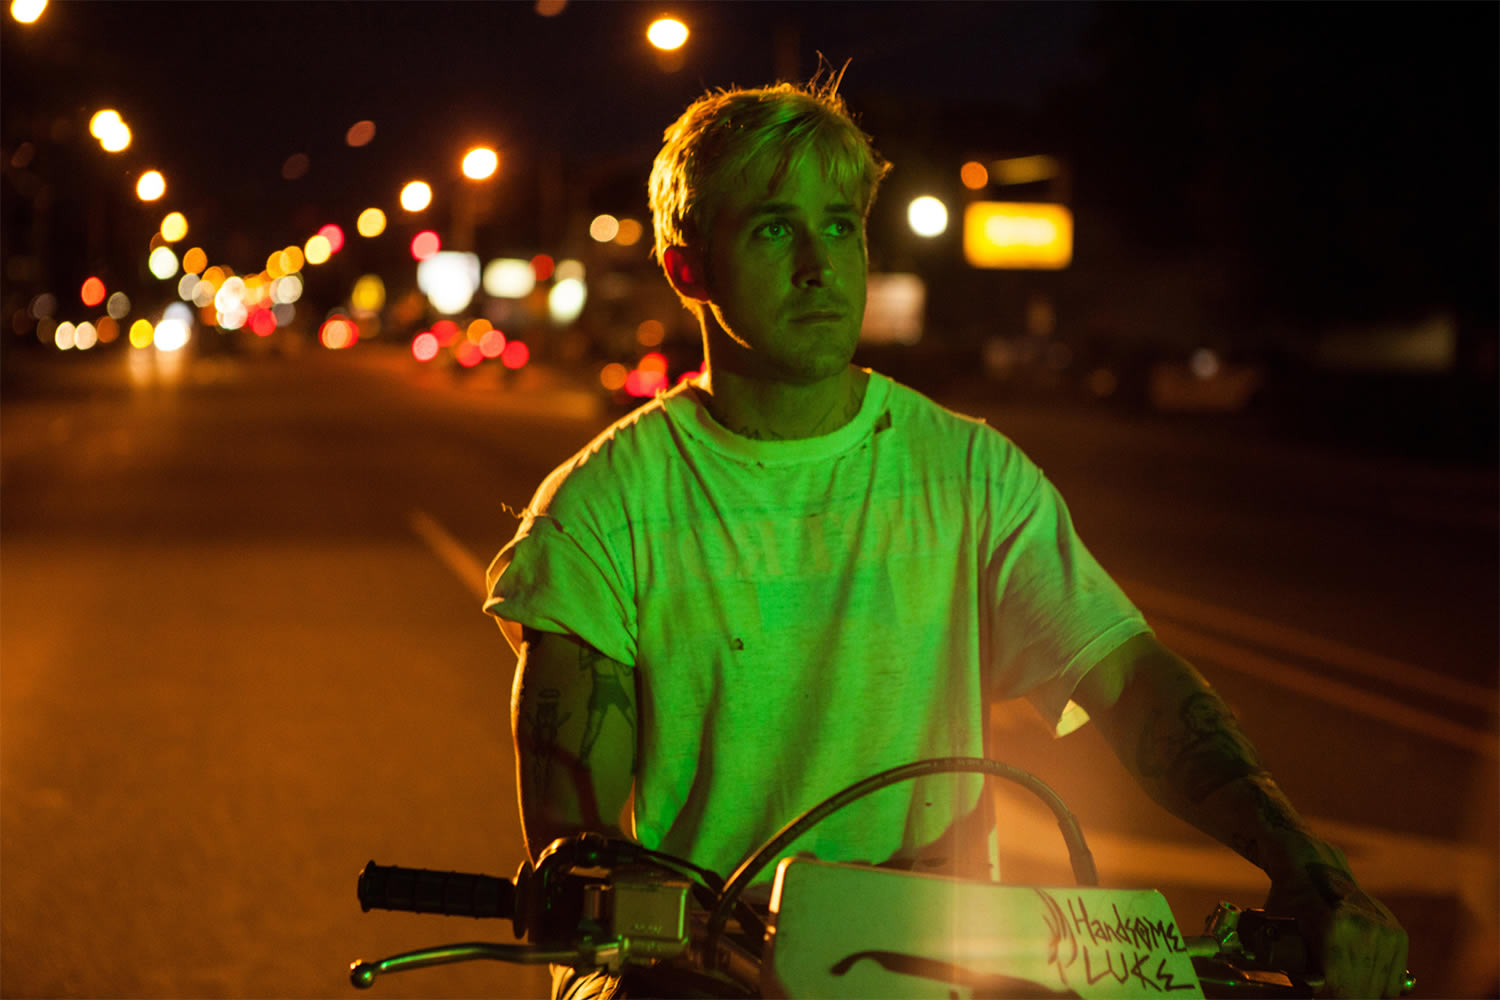 Ryan Gosling by The Place Beyond The Pines